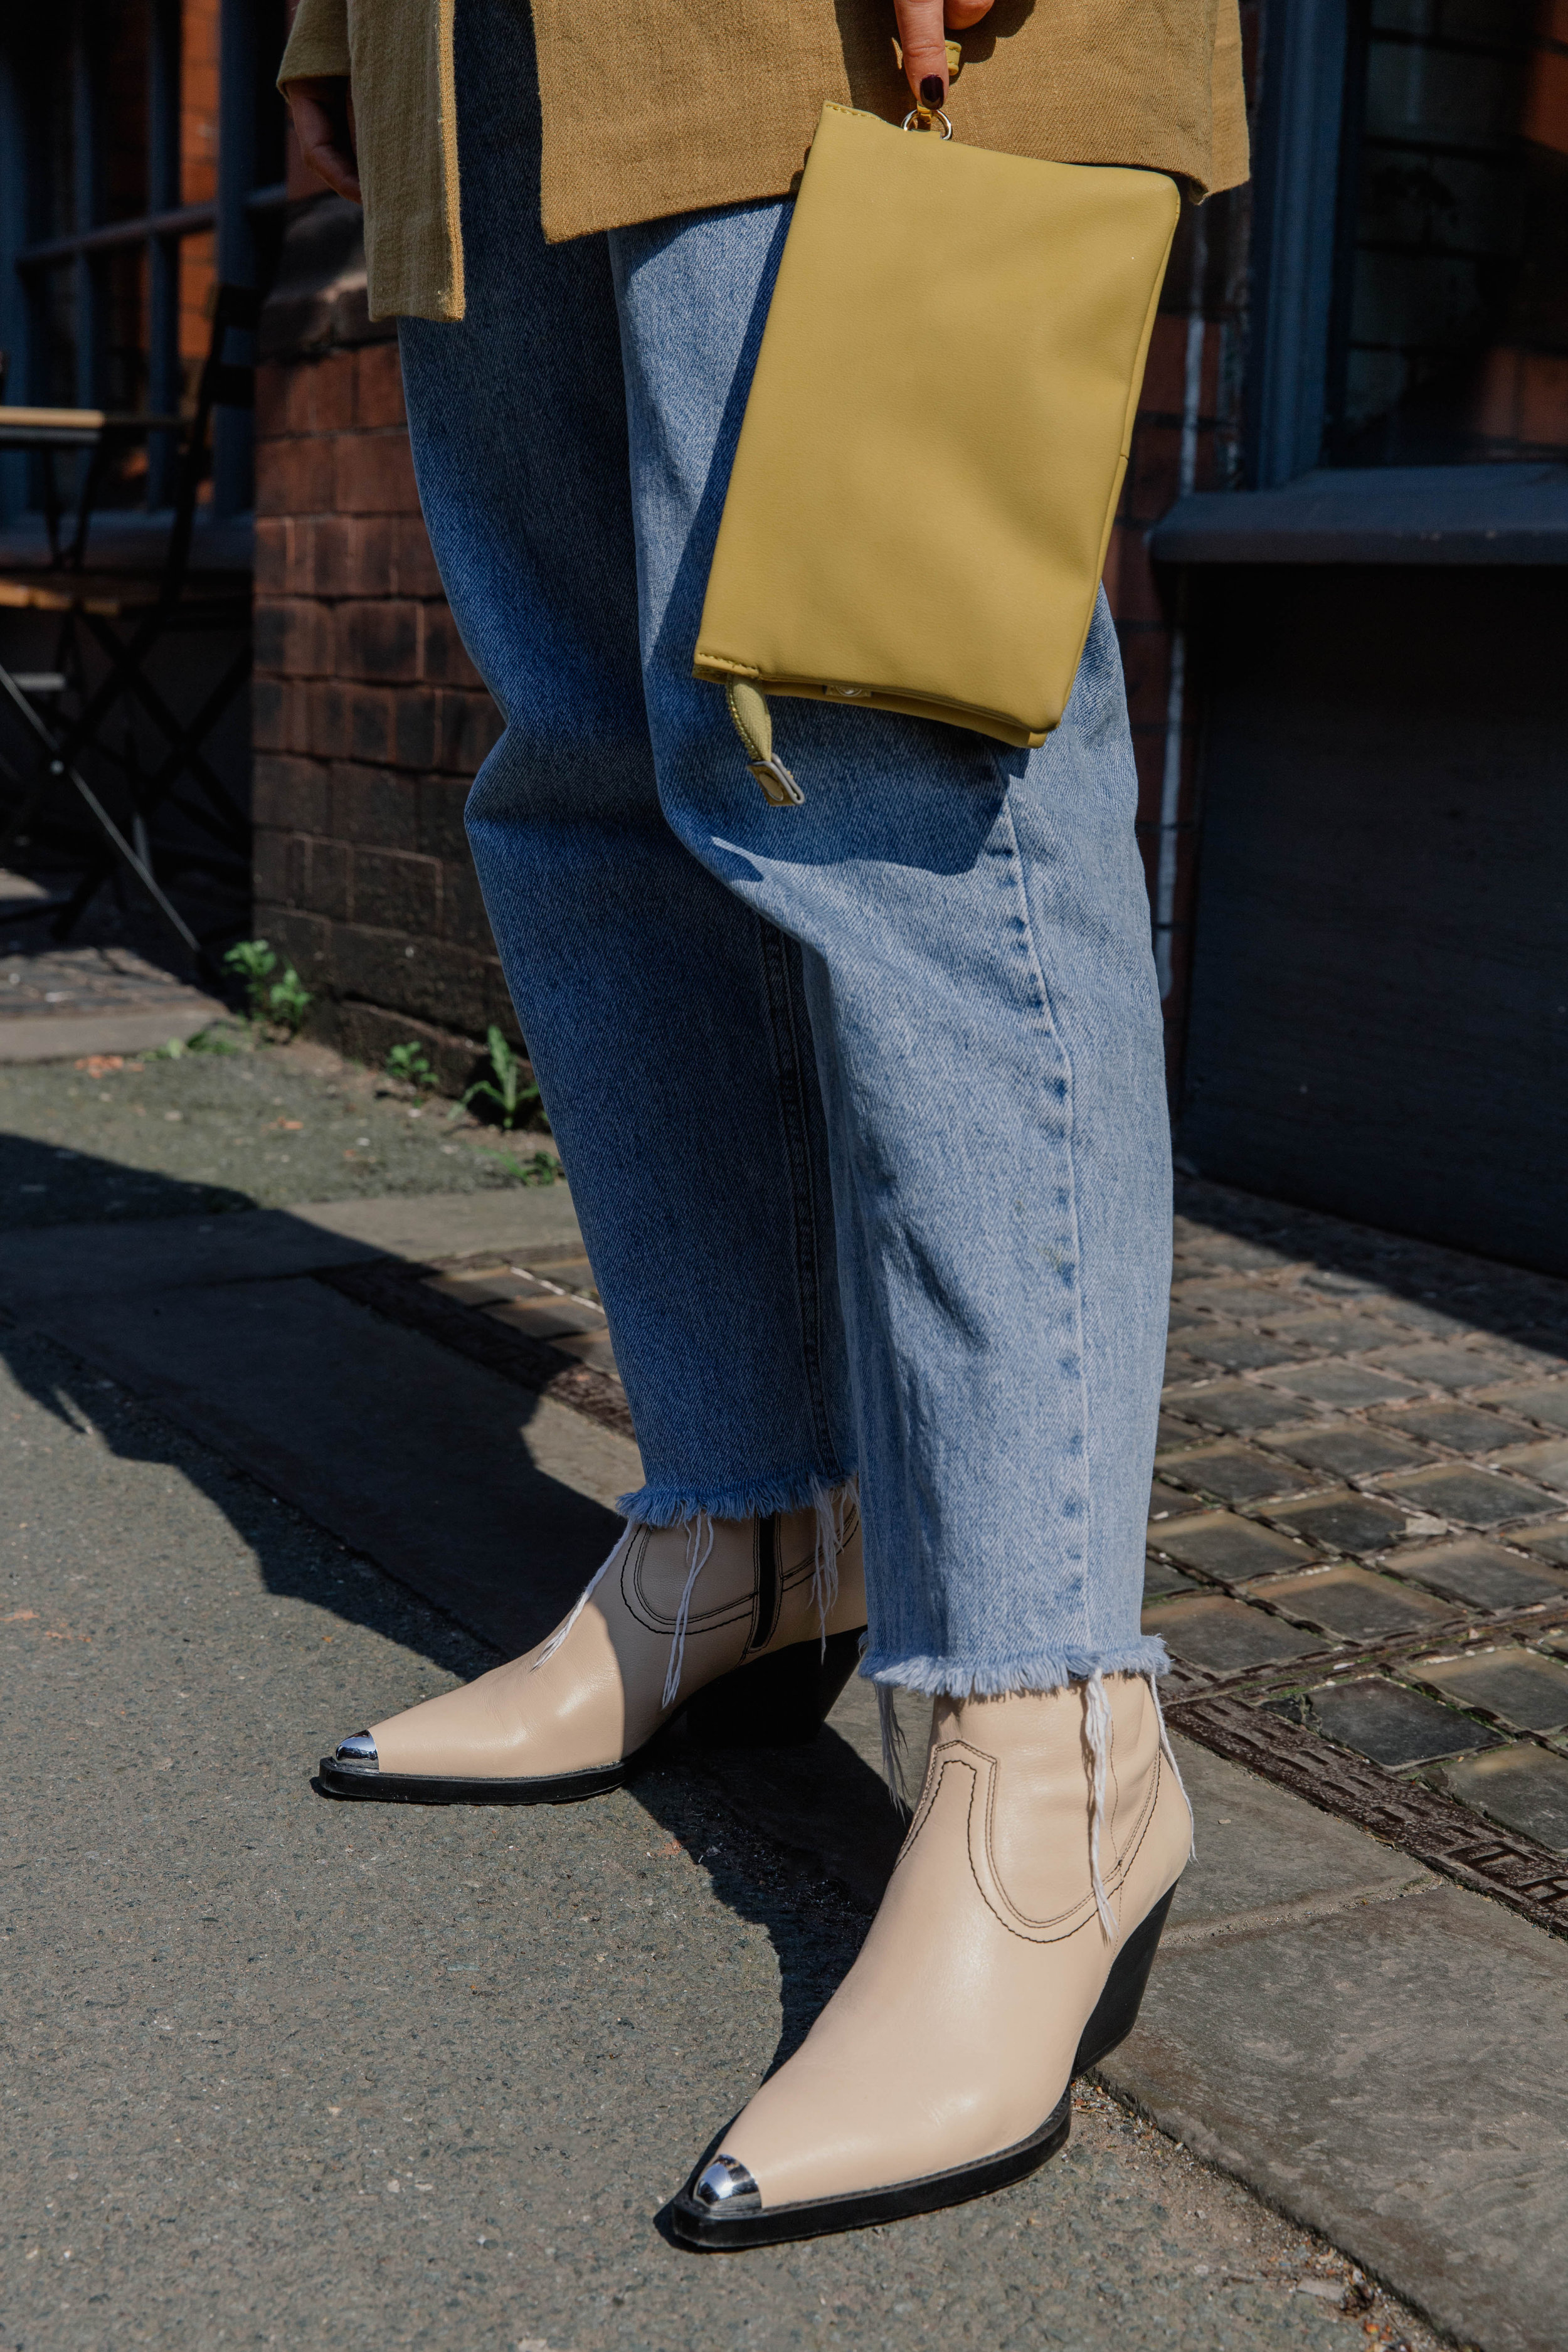 CROP TOP AND VINTAGE JEANS, WITH A BLAZER AND SS19 COWBOYS IN NORTHERN QUARTER, MANCHESTER 7